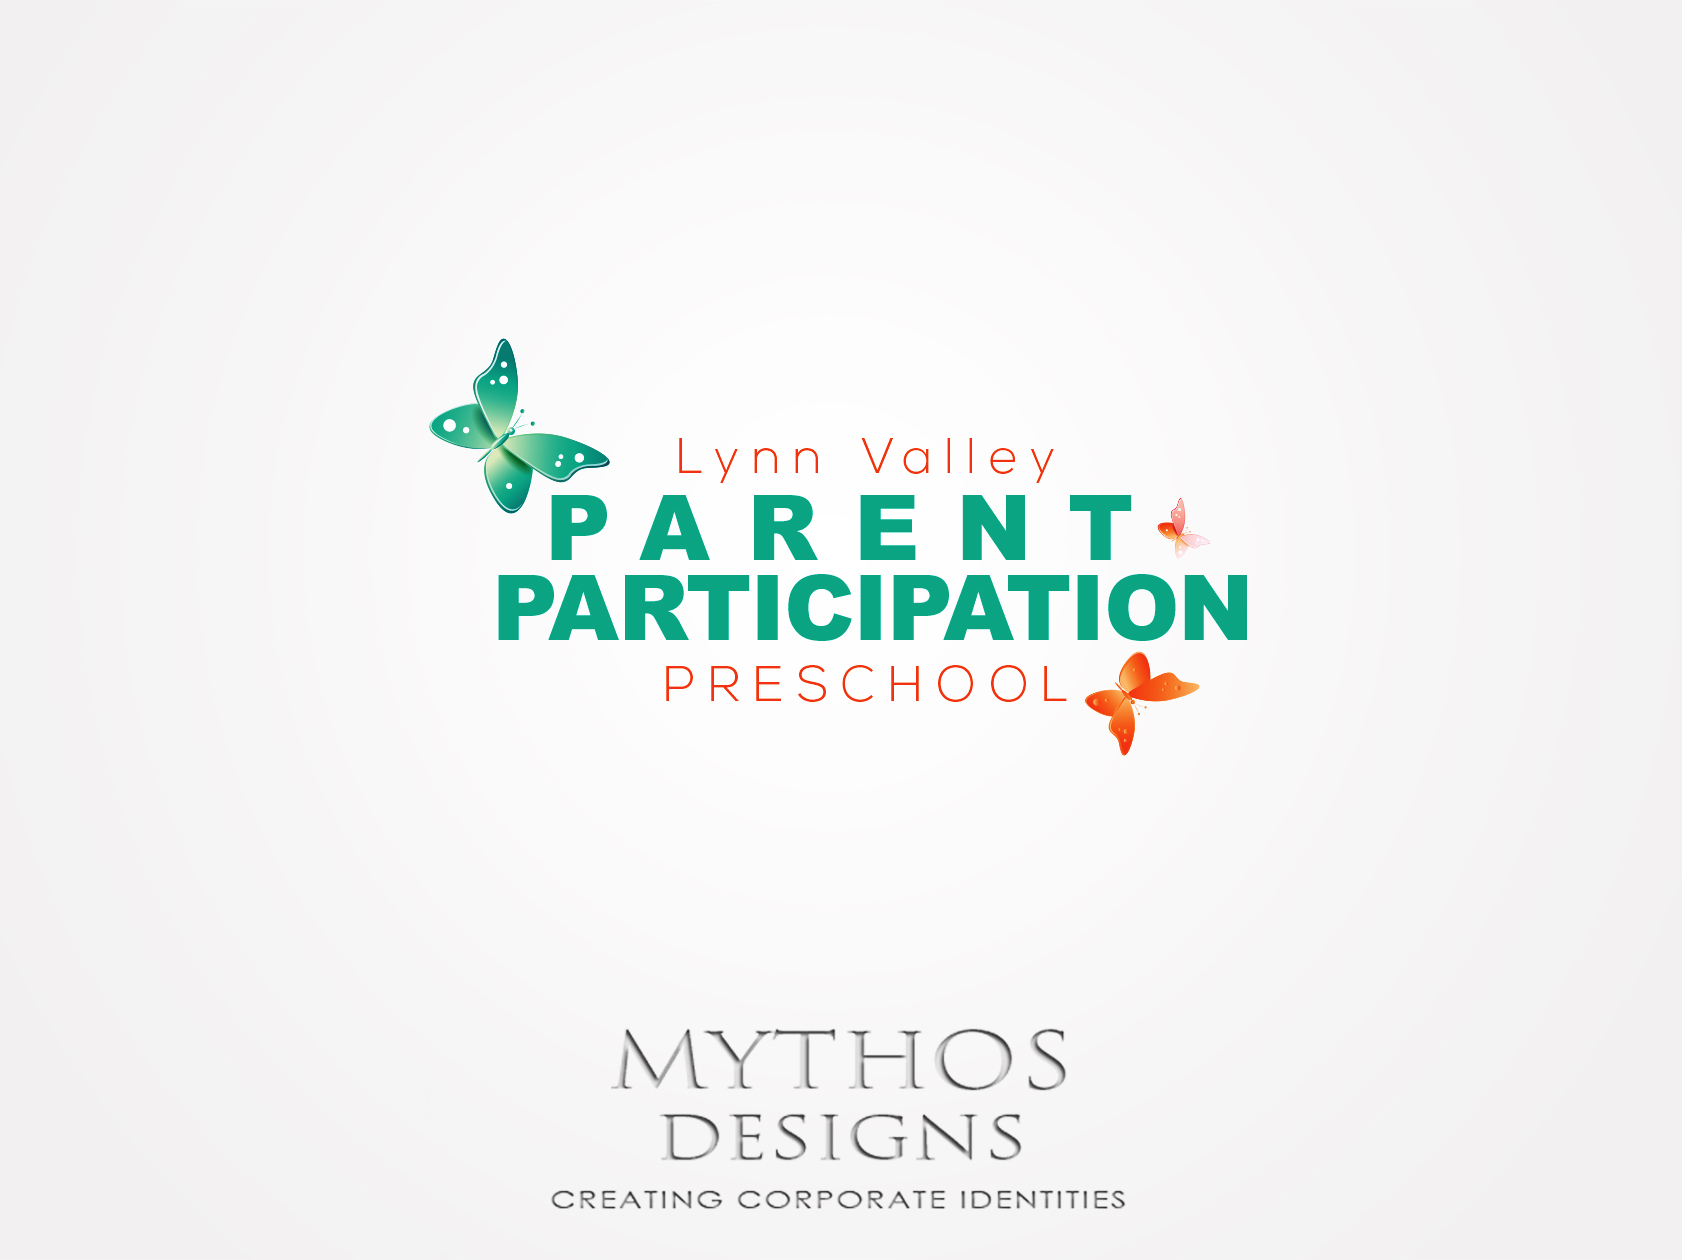 Logo Design by Mythos Designs - Entry No. 28 in the Logo Design Contest New Logo Design for Lynn Valley Parent Participation Preschool.